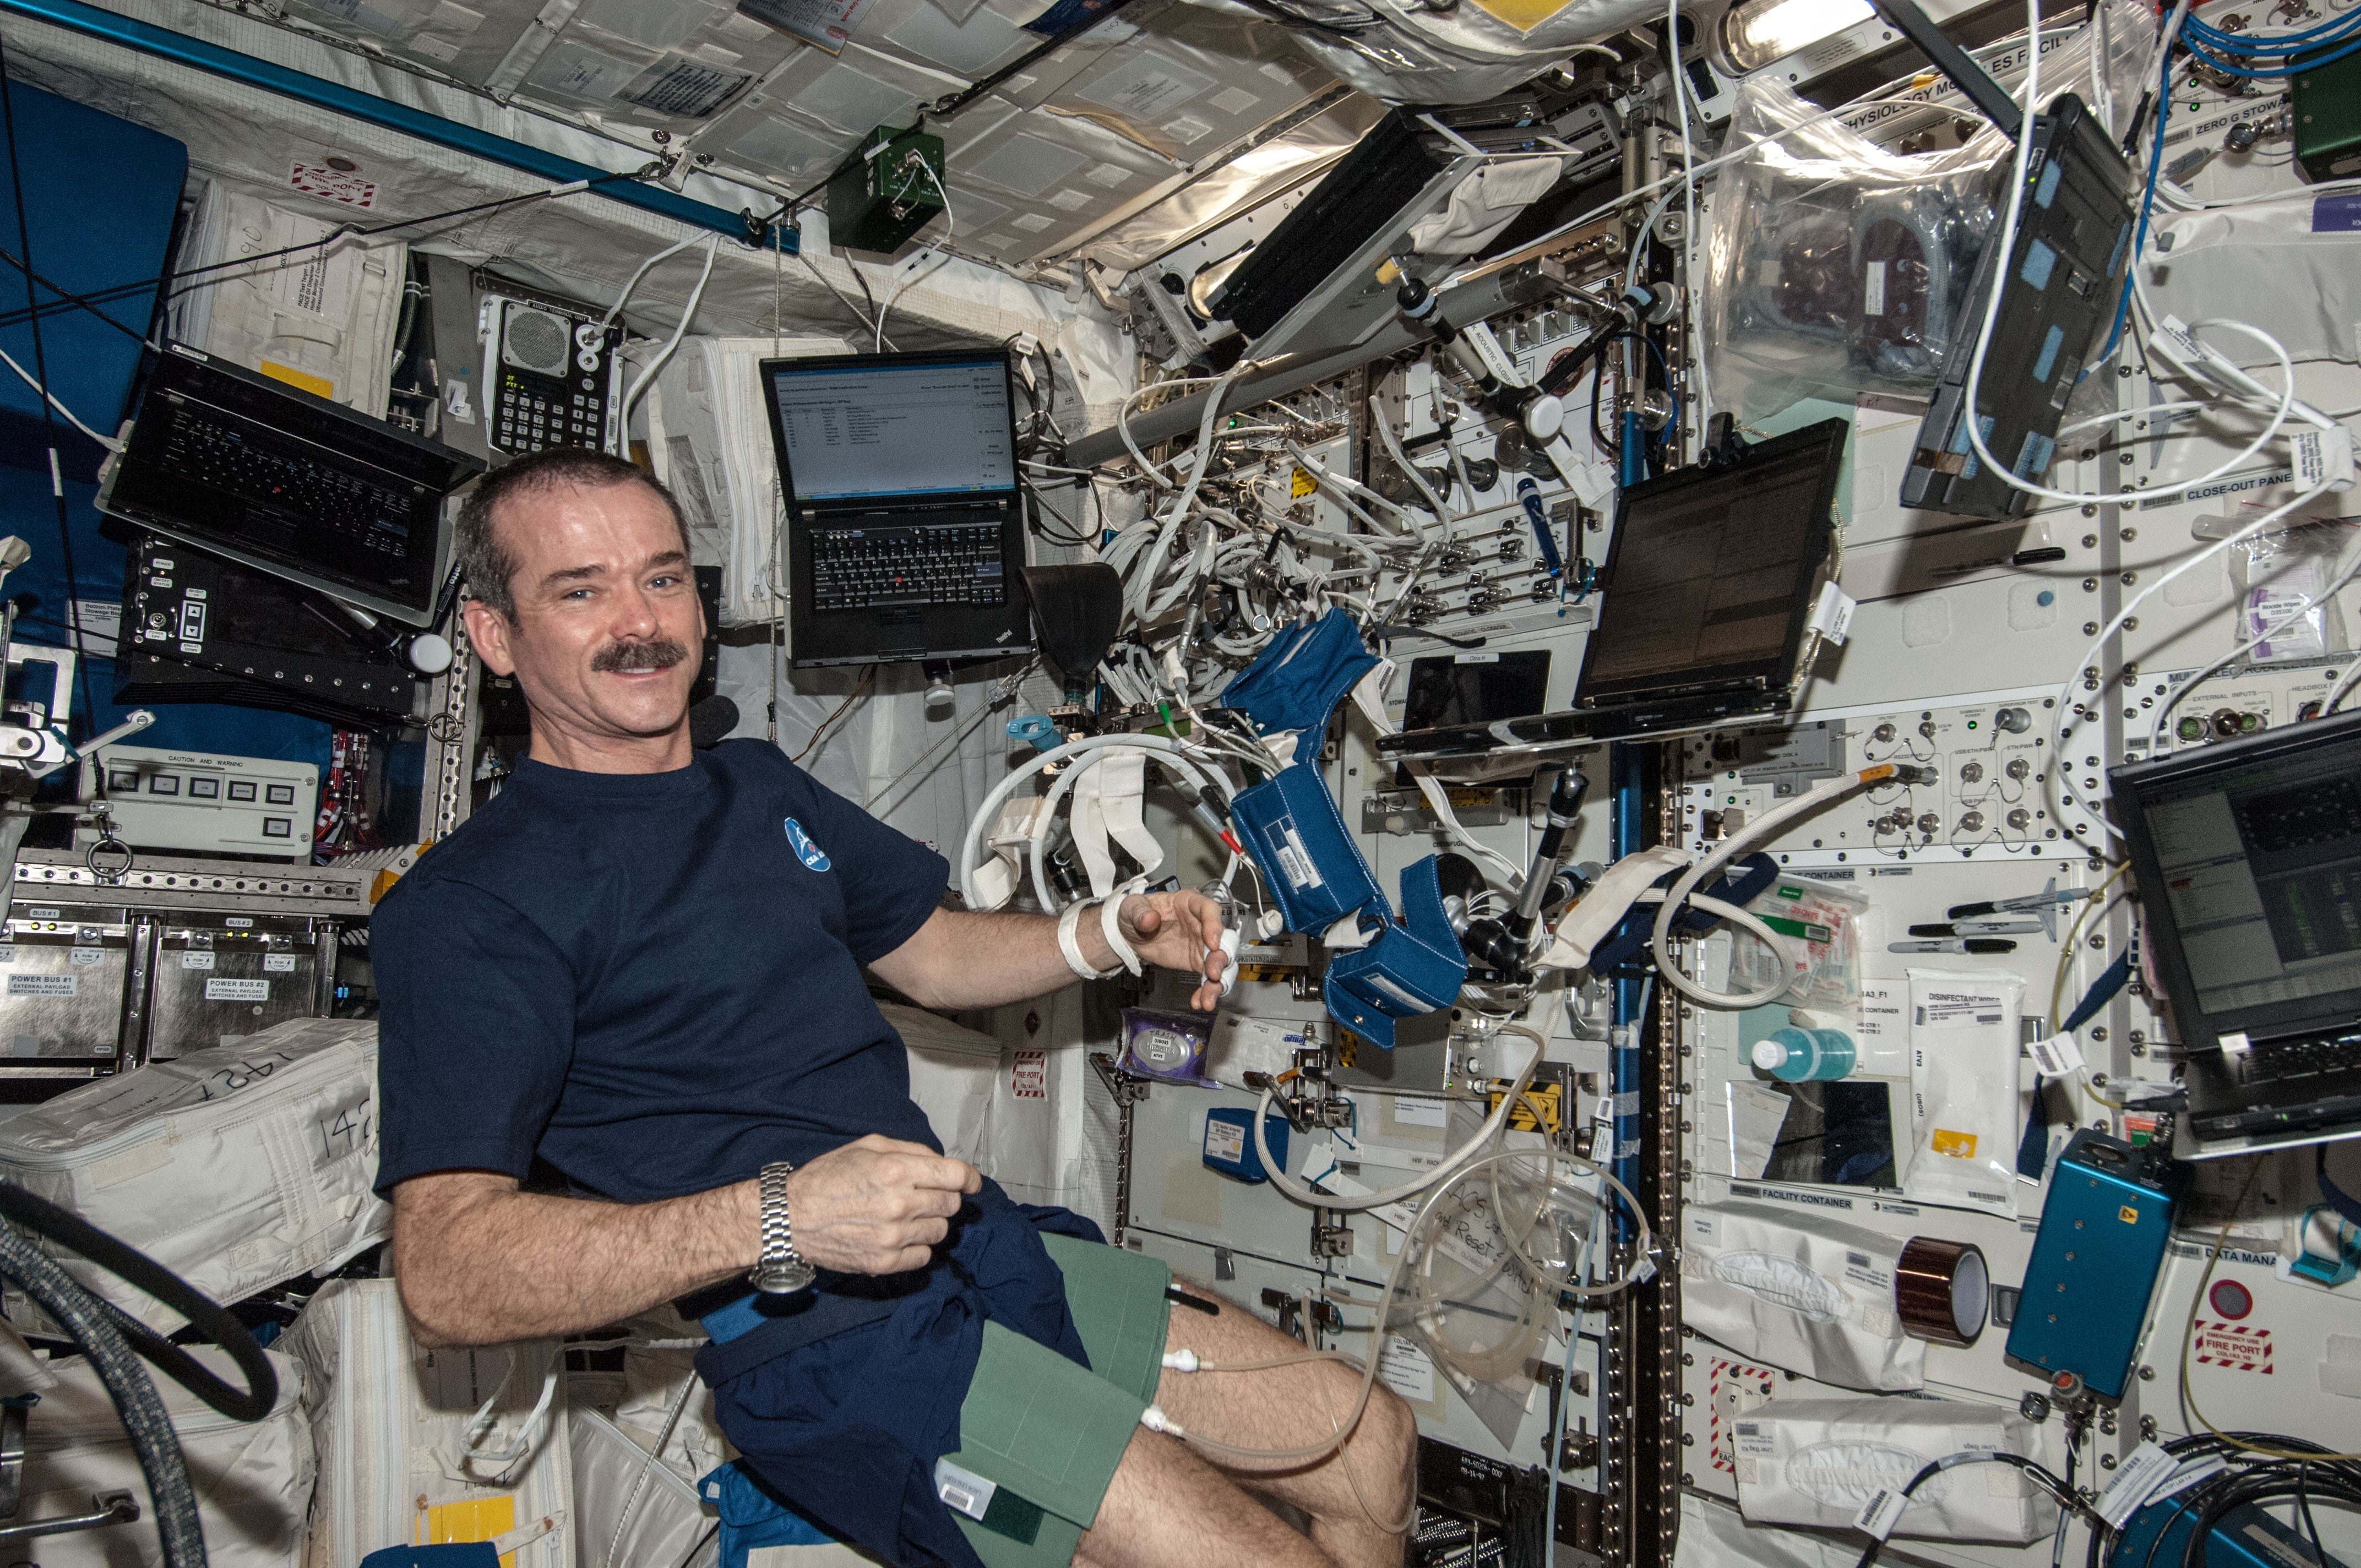 How Are Laptops Used On The International Space Station?